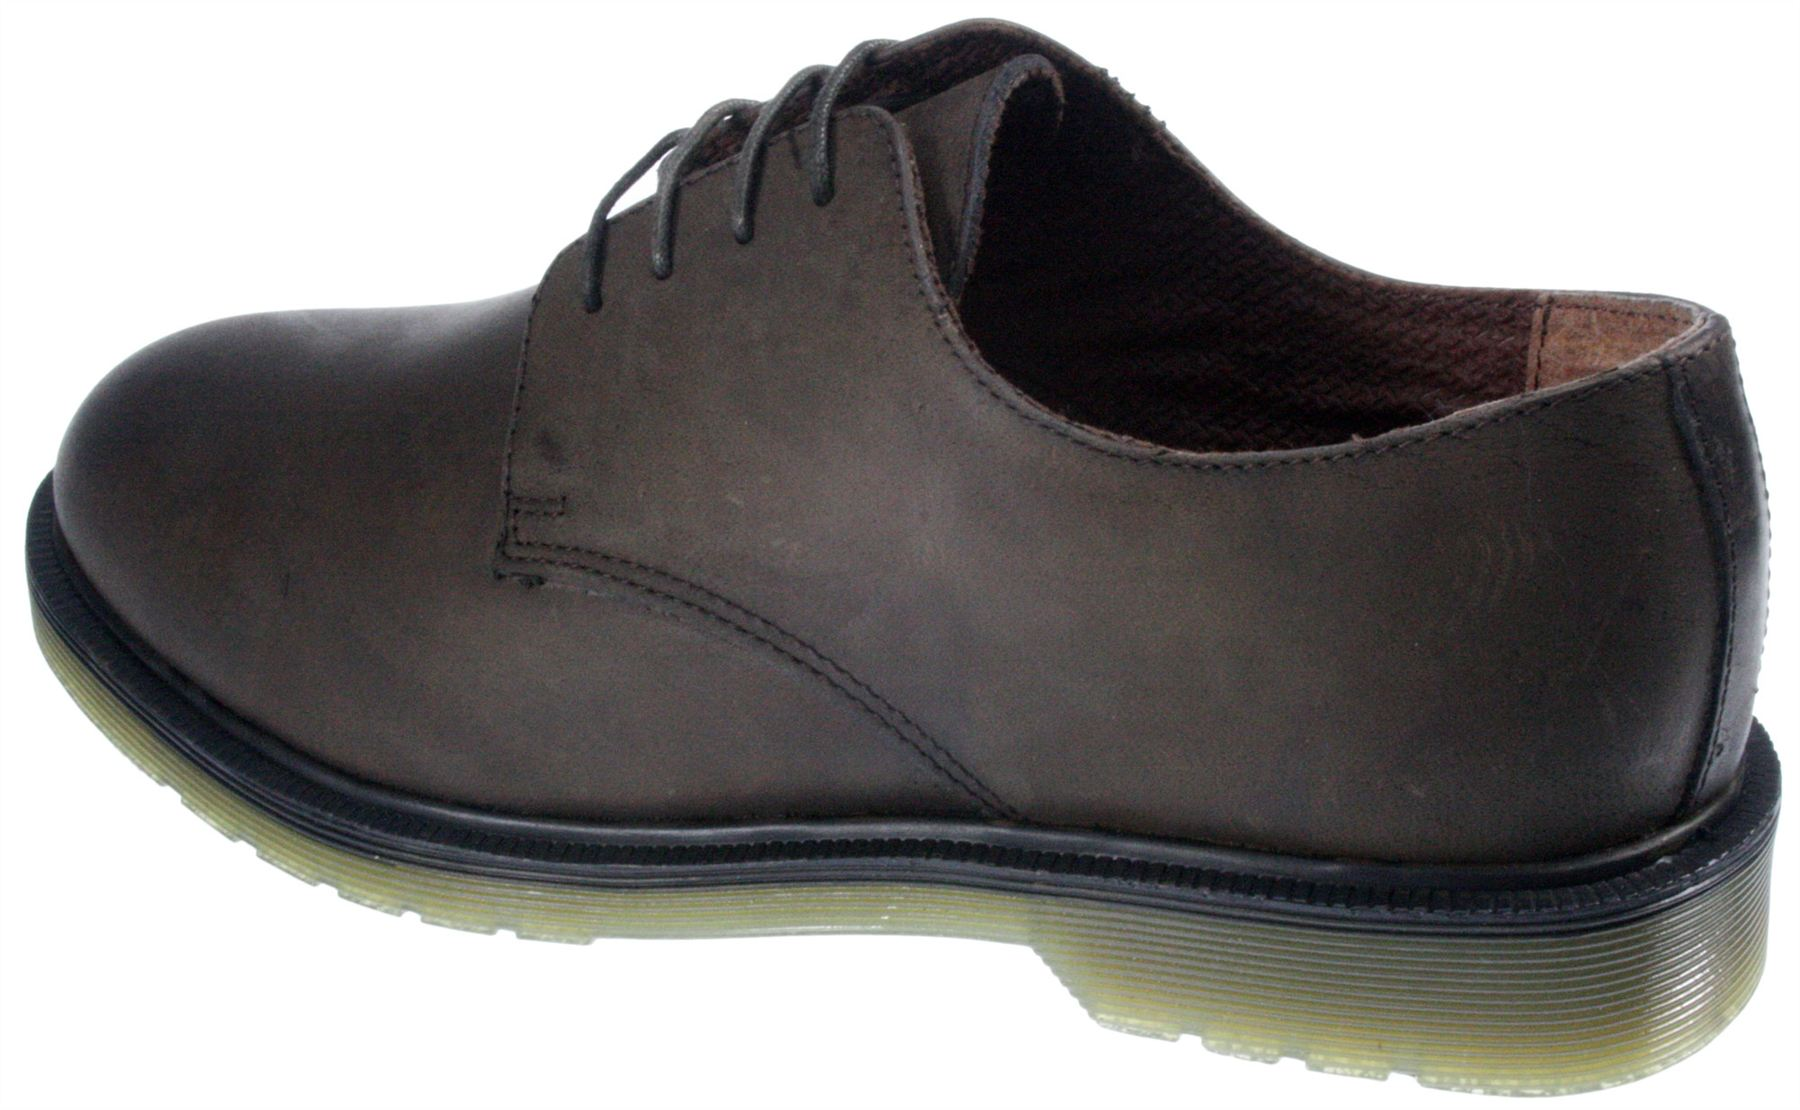 Mens-Leather-Oxford-Lace-Shoes-with-Air-Sole-FREE-POSTAGE